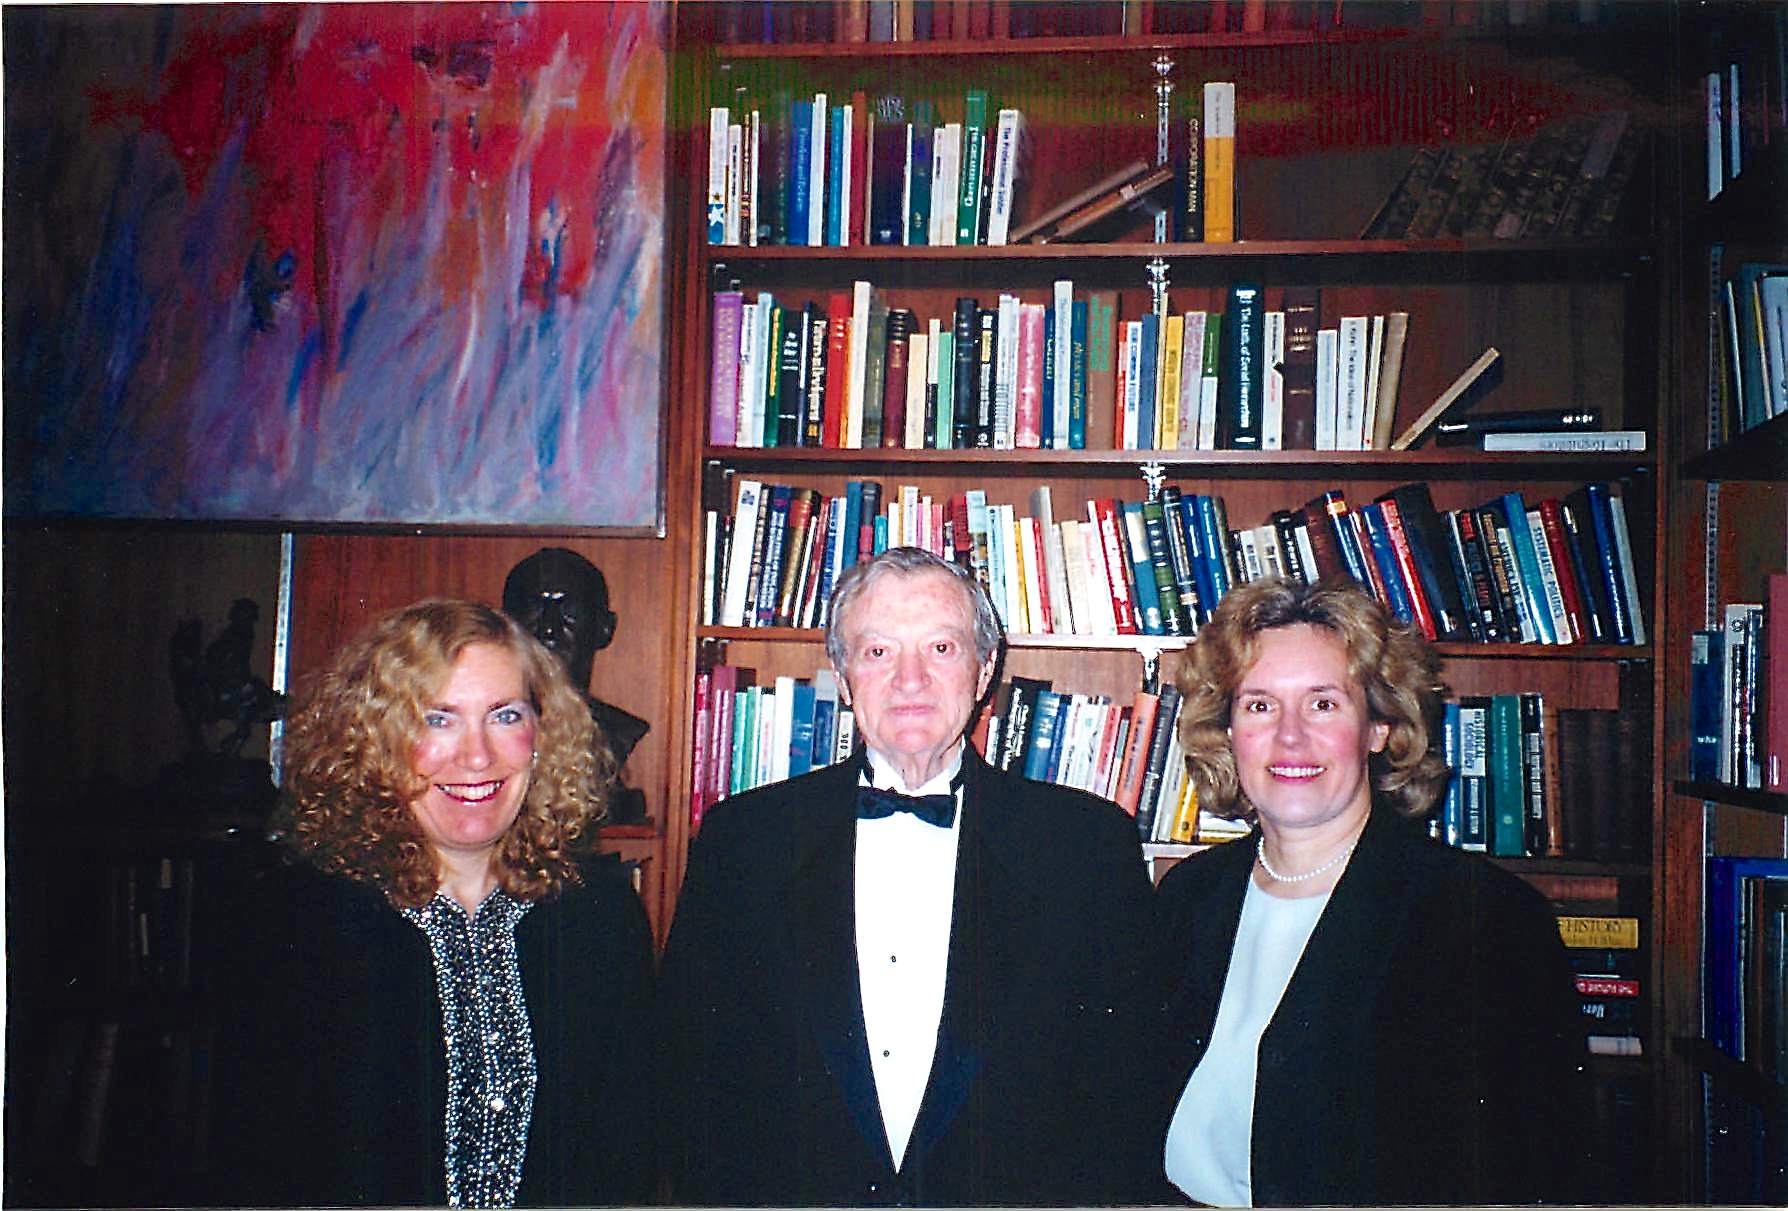 Elaine, Charles Gilvarg (her thesis advisor at Princeton) & Lorraine Gudas 1999 Harvey Lecture NYC